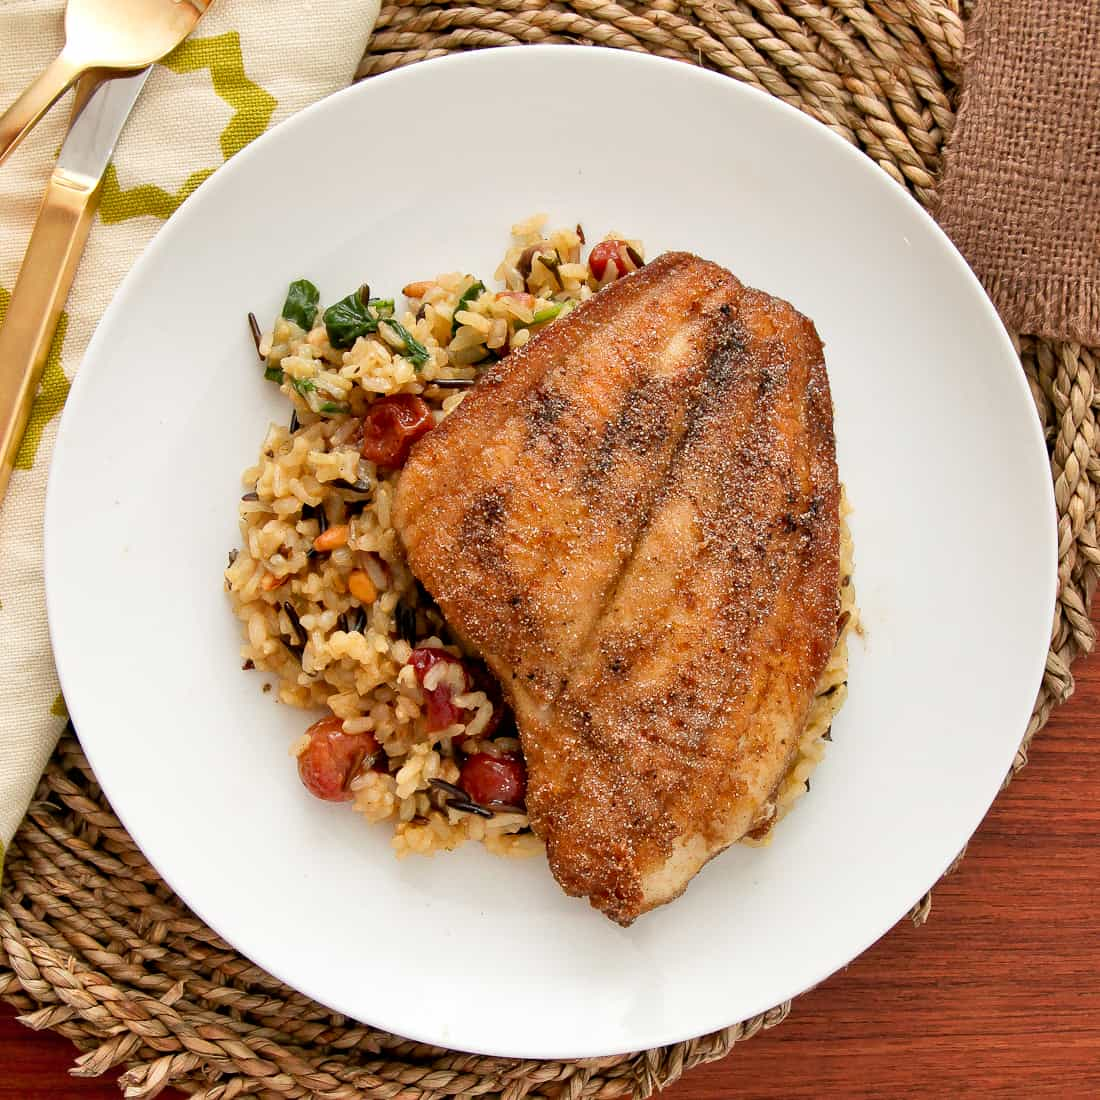 Pan-fried Sole & Mixed Wild Rice with Roasted Grapes